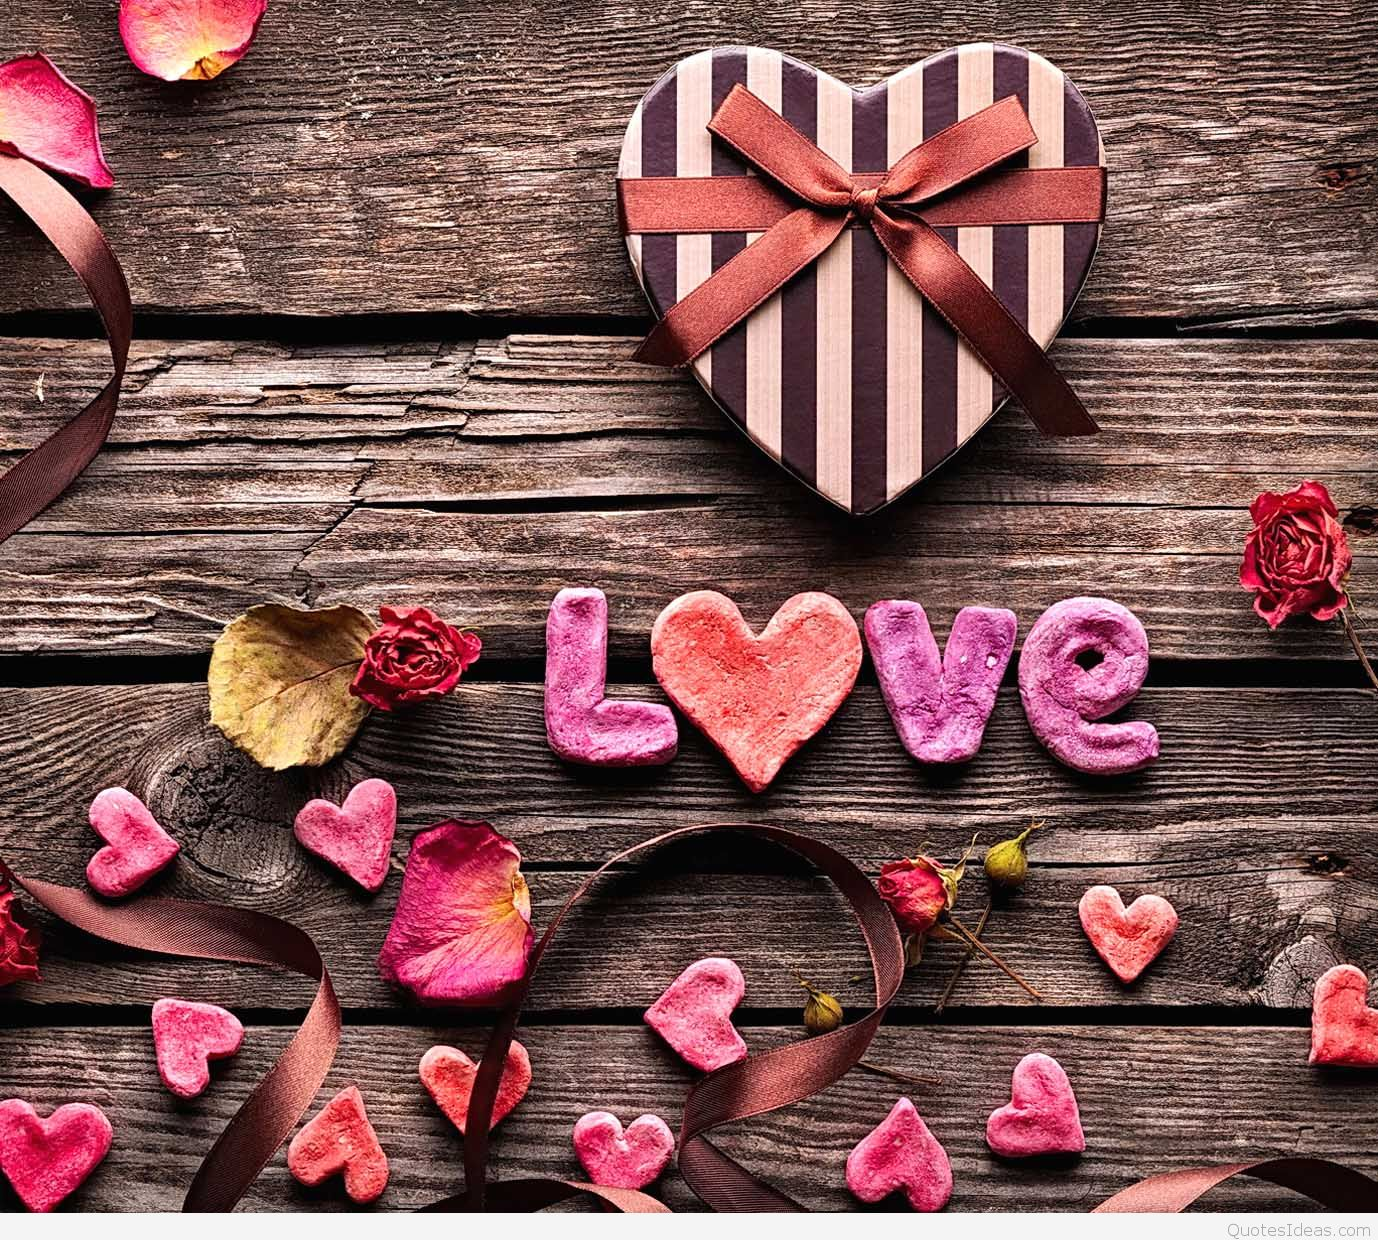 Download Love Wallpapers For Mobile ...